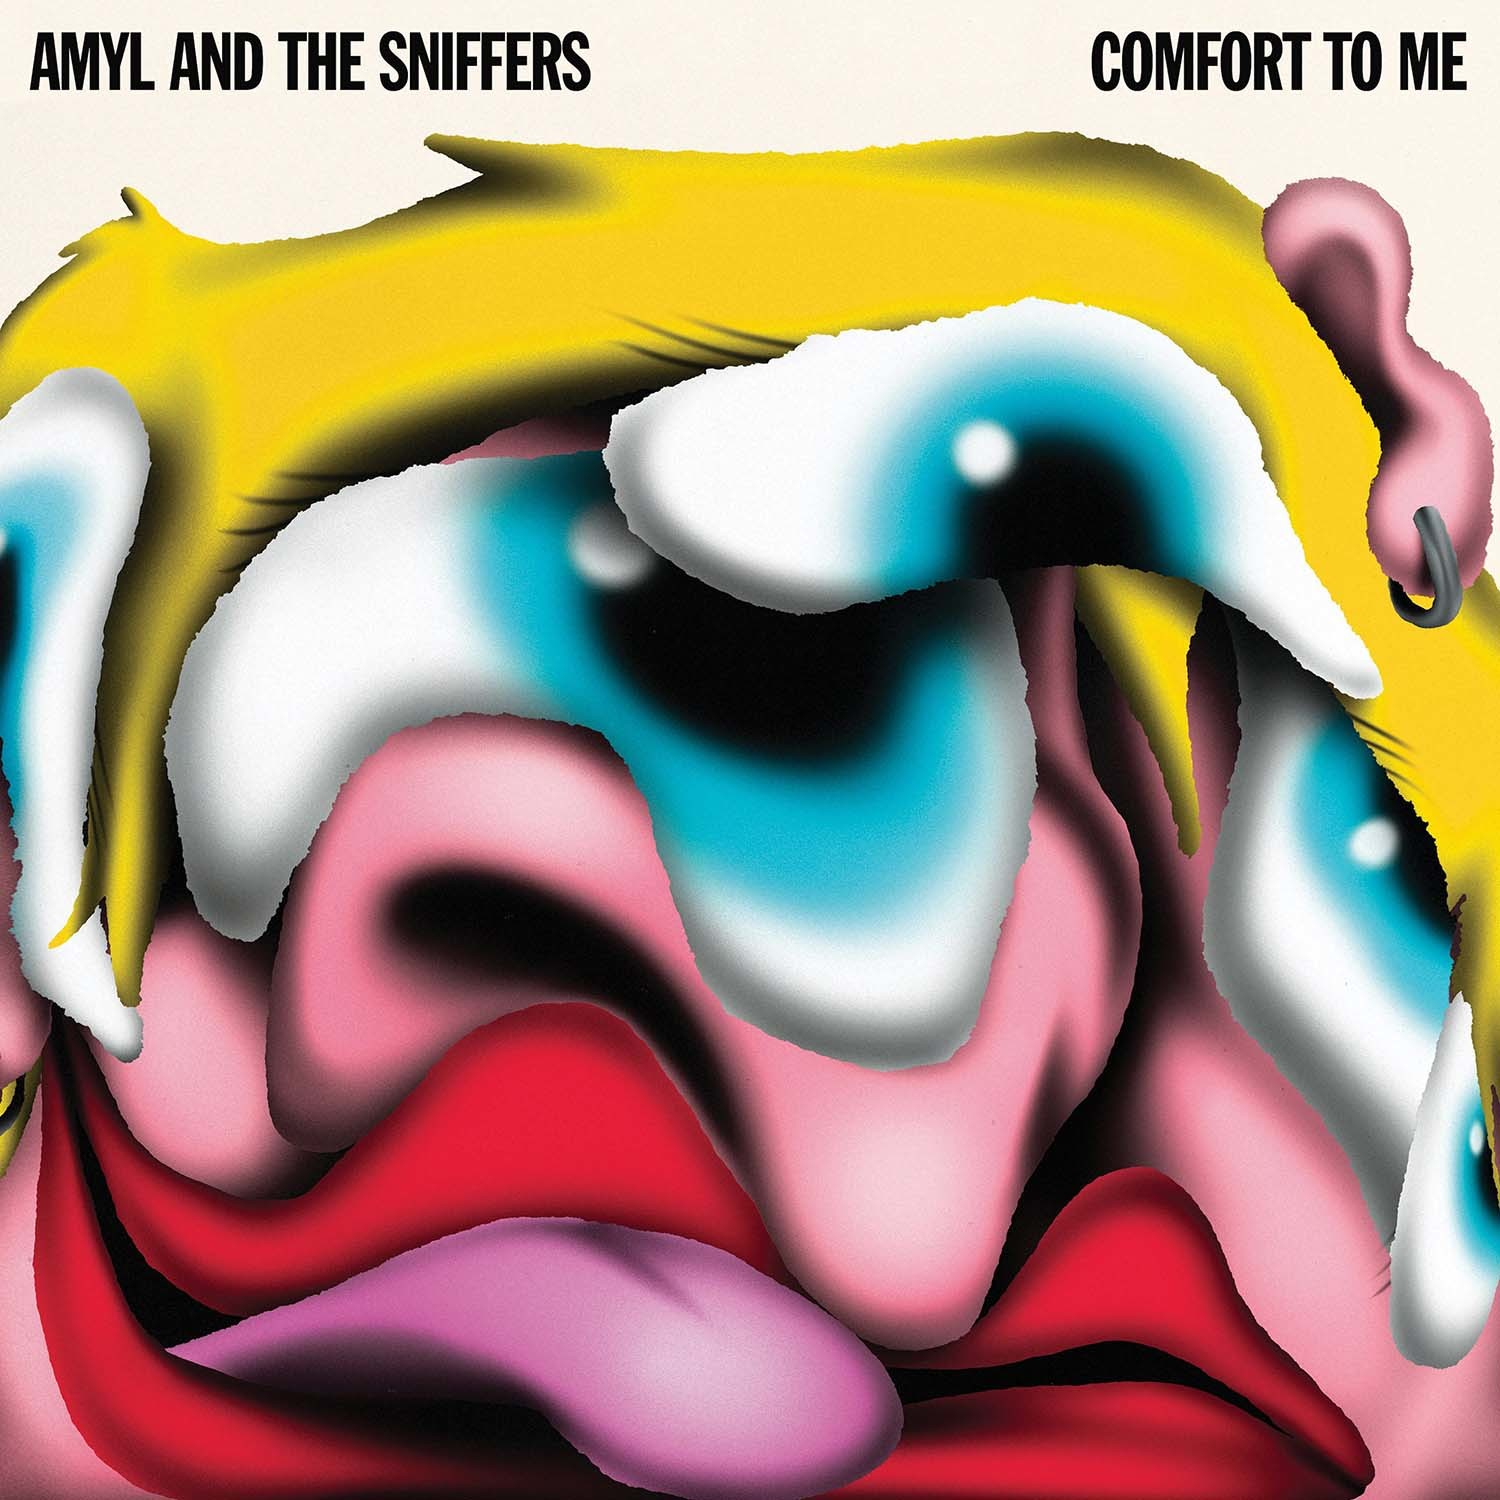 Amyl and the Sniffers - Comfort To Me | Reviews | DIY Magazine